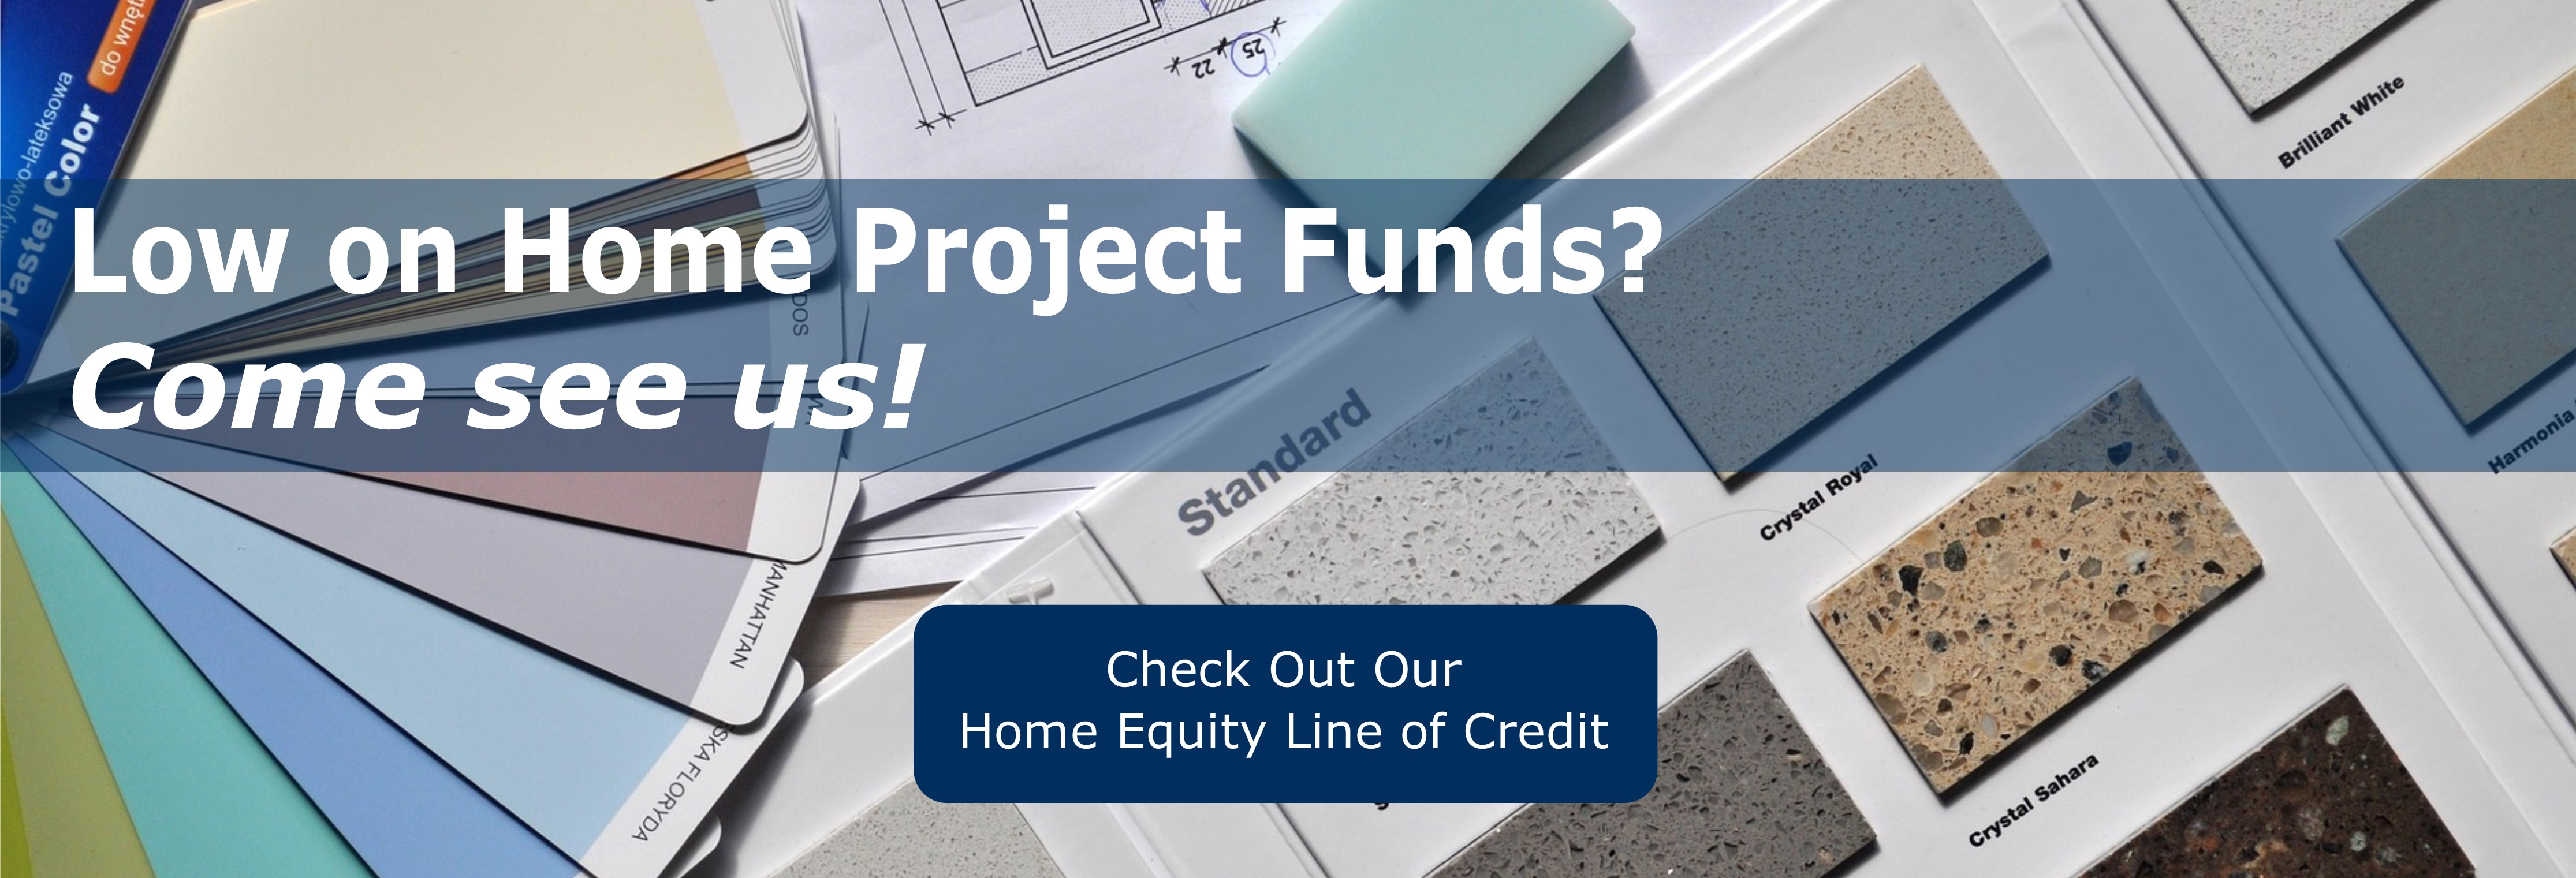 Low on Home Project Funds? Come see us! Check out our Home Equity Line of Credit